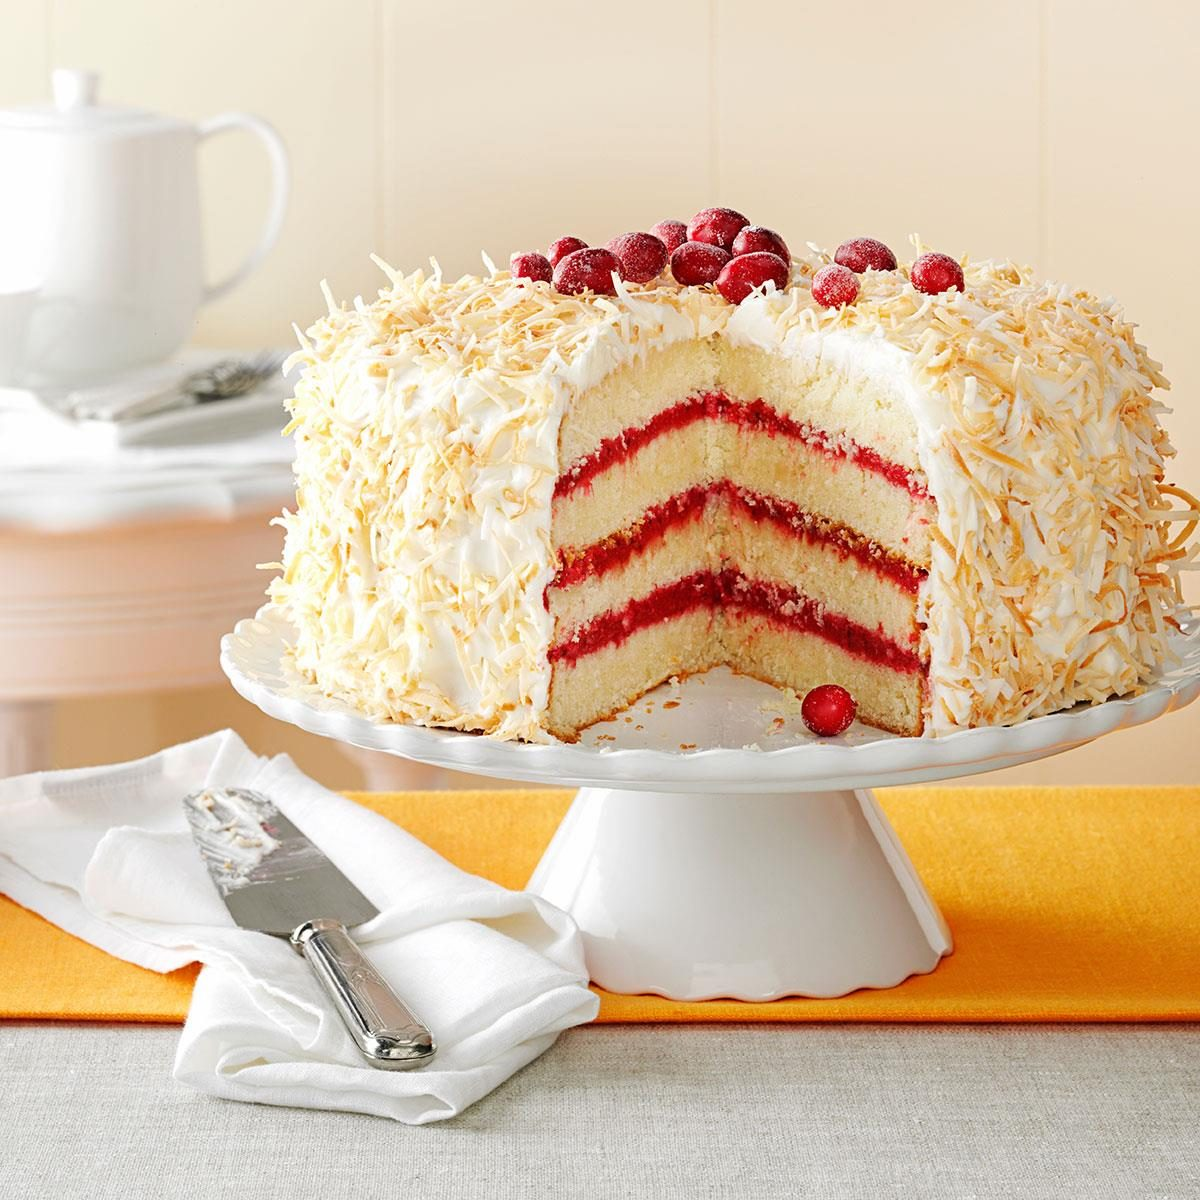 Cranberry Coconut Cake with Marshmallow Cream Frosting